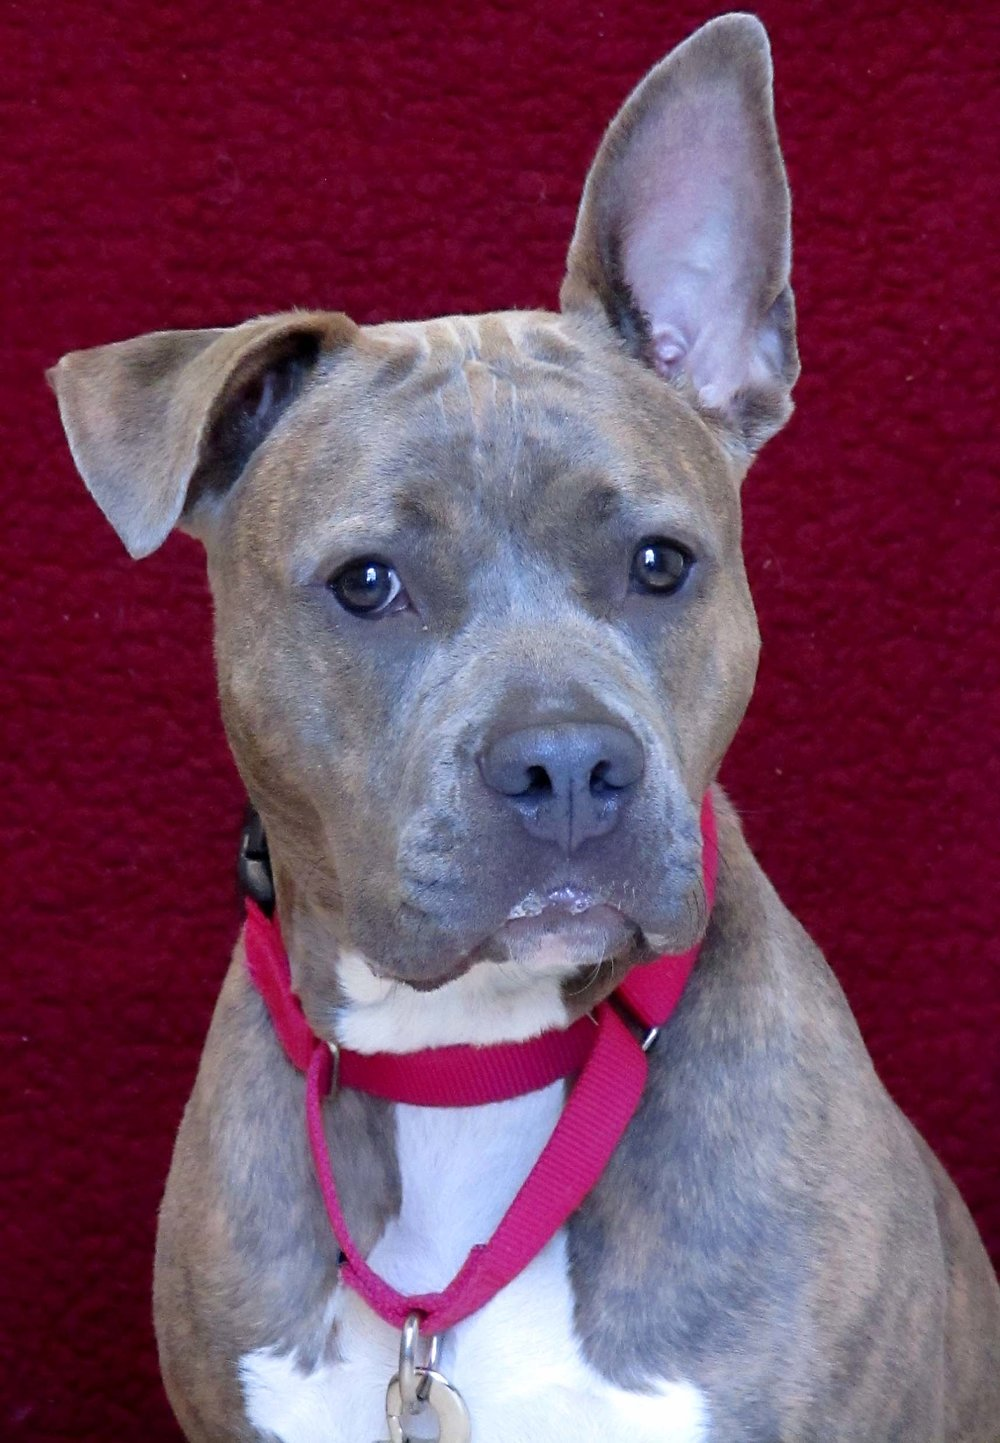 Samantha the 11-month-old Pit Bull Terrier was displaced when her human owners stopped getting along. She is quite playful and engages with people nicely! Samantha would do best in a home where she is the only pet as she doesn't get along with many dogs.